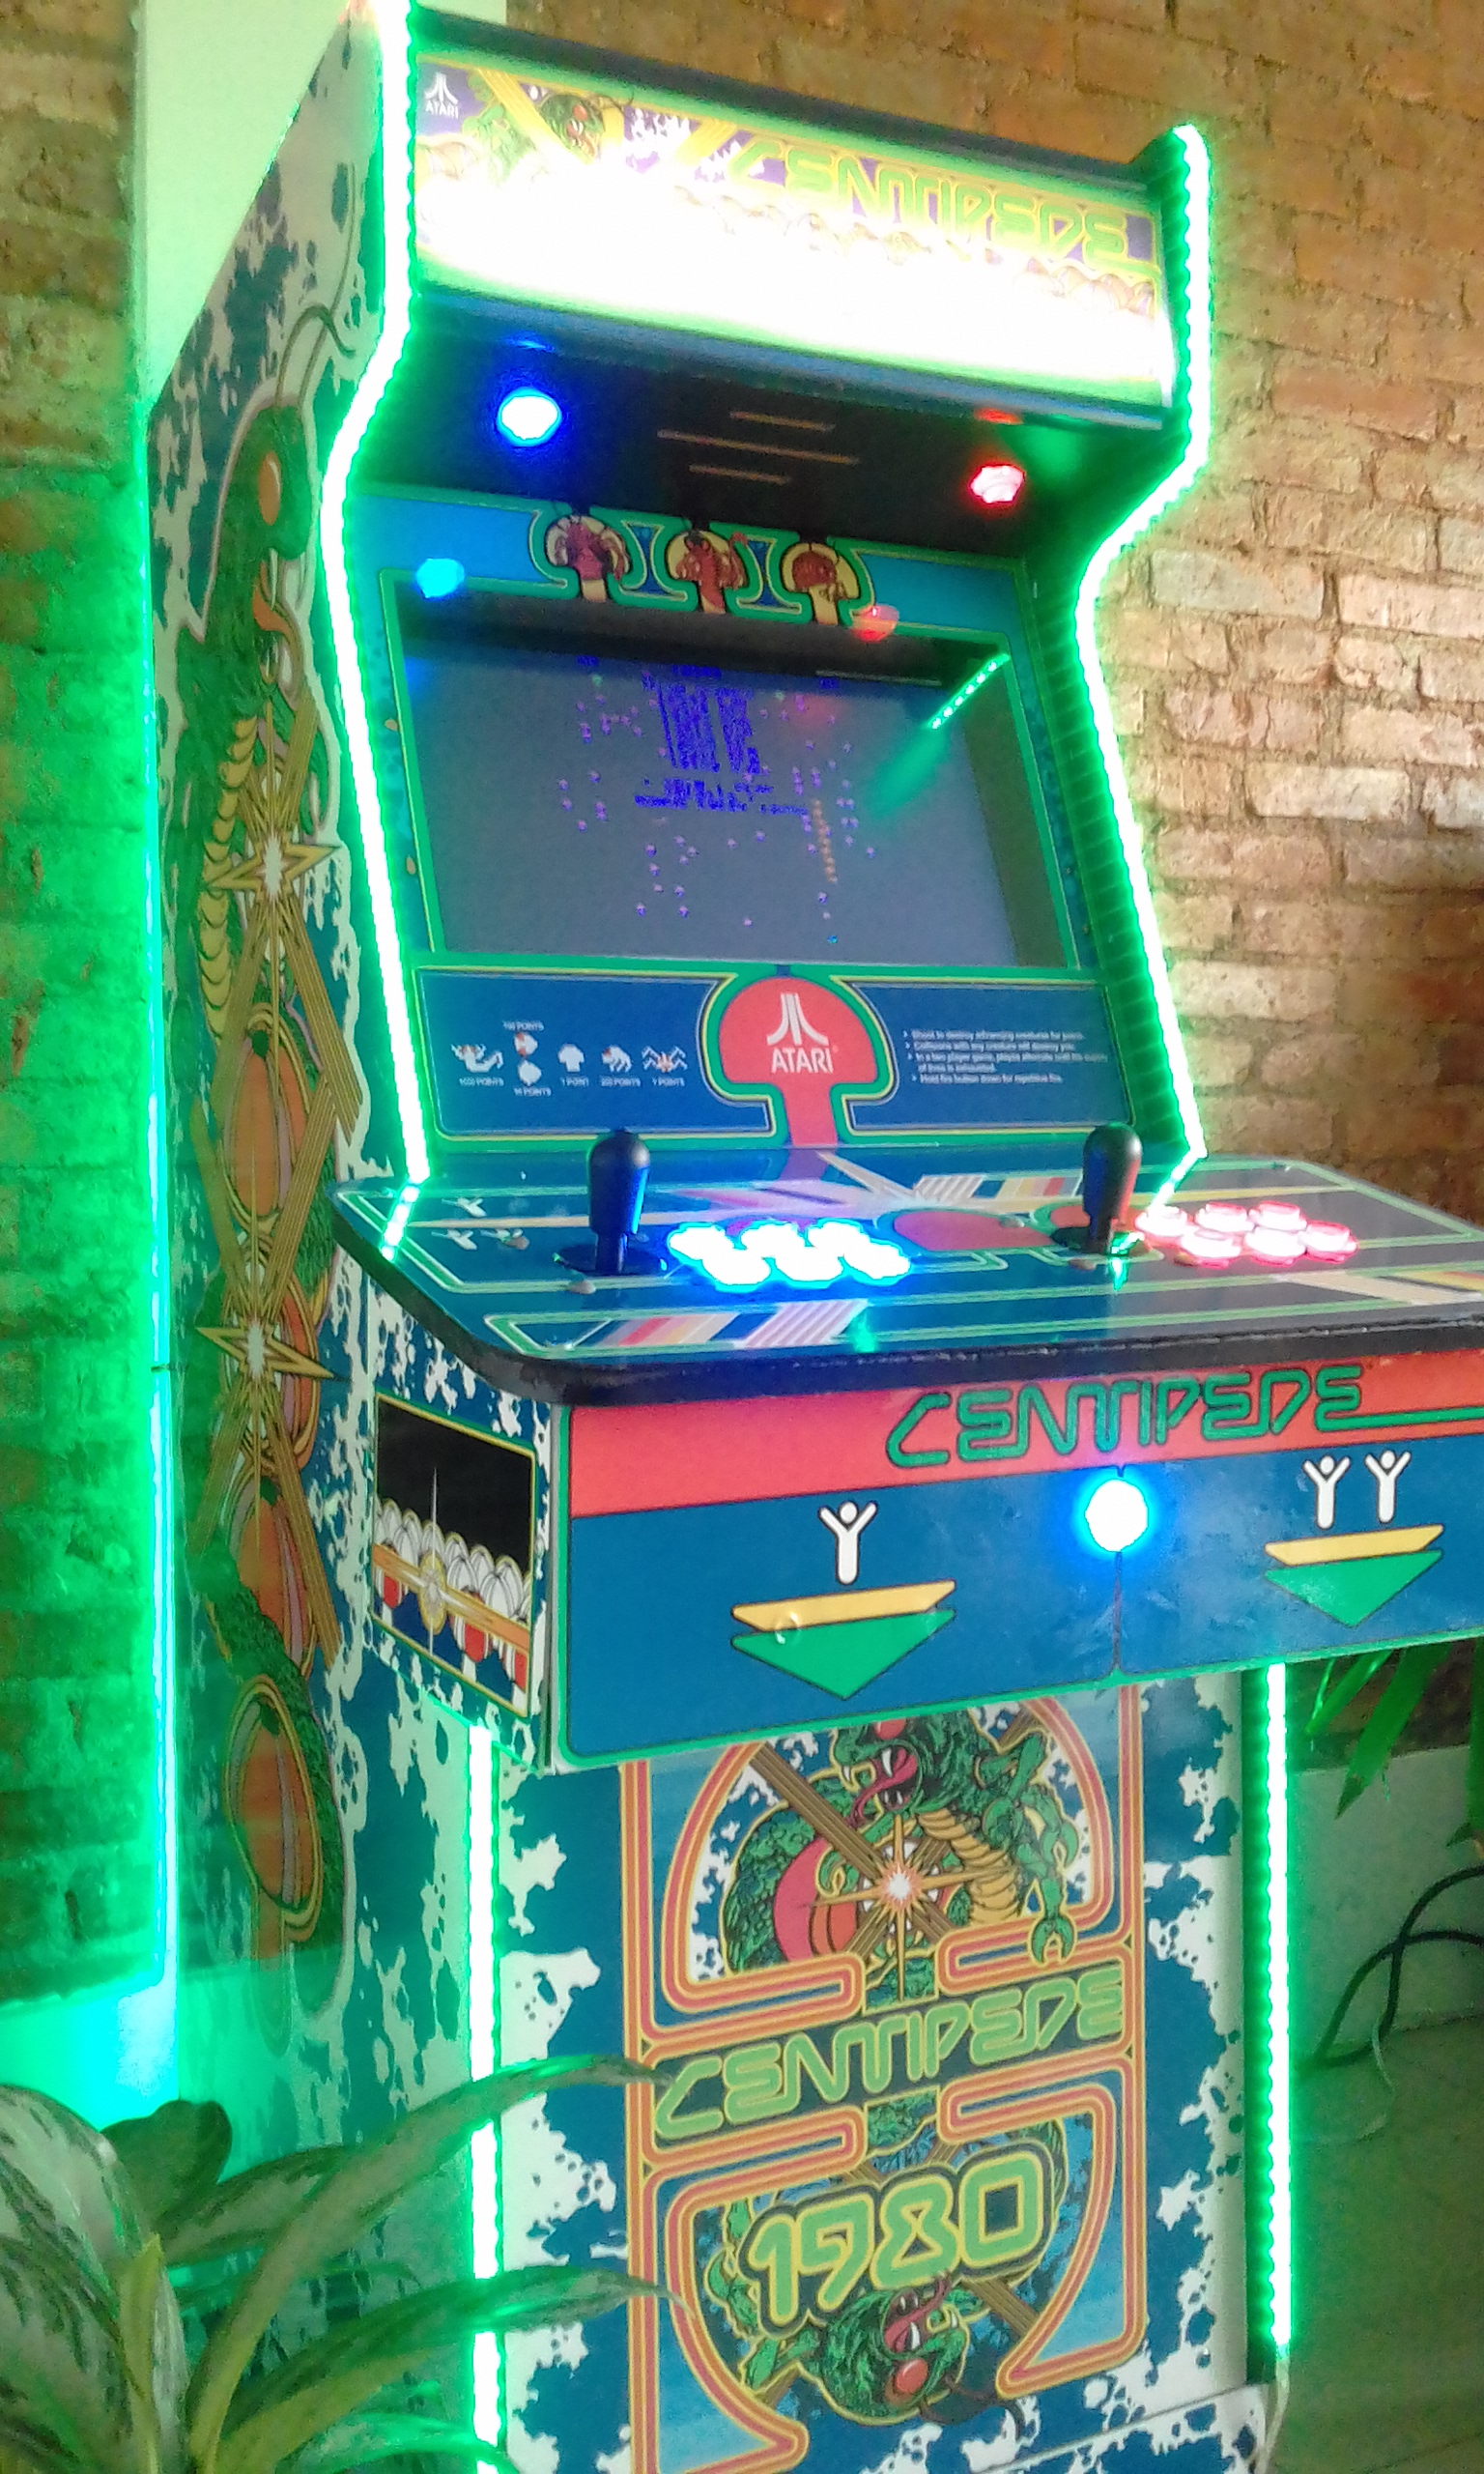 ARCADE CENTIPEDE GAME MACHINE IN COSTA RICA.jpg